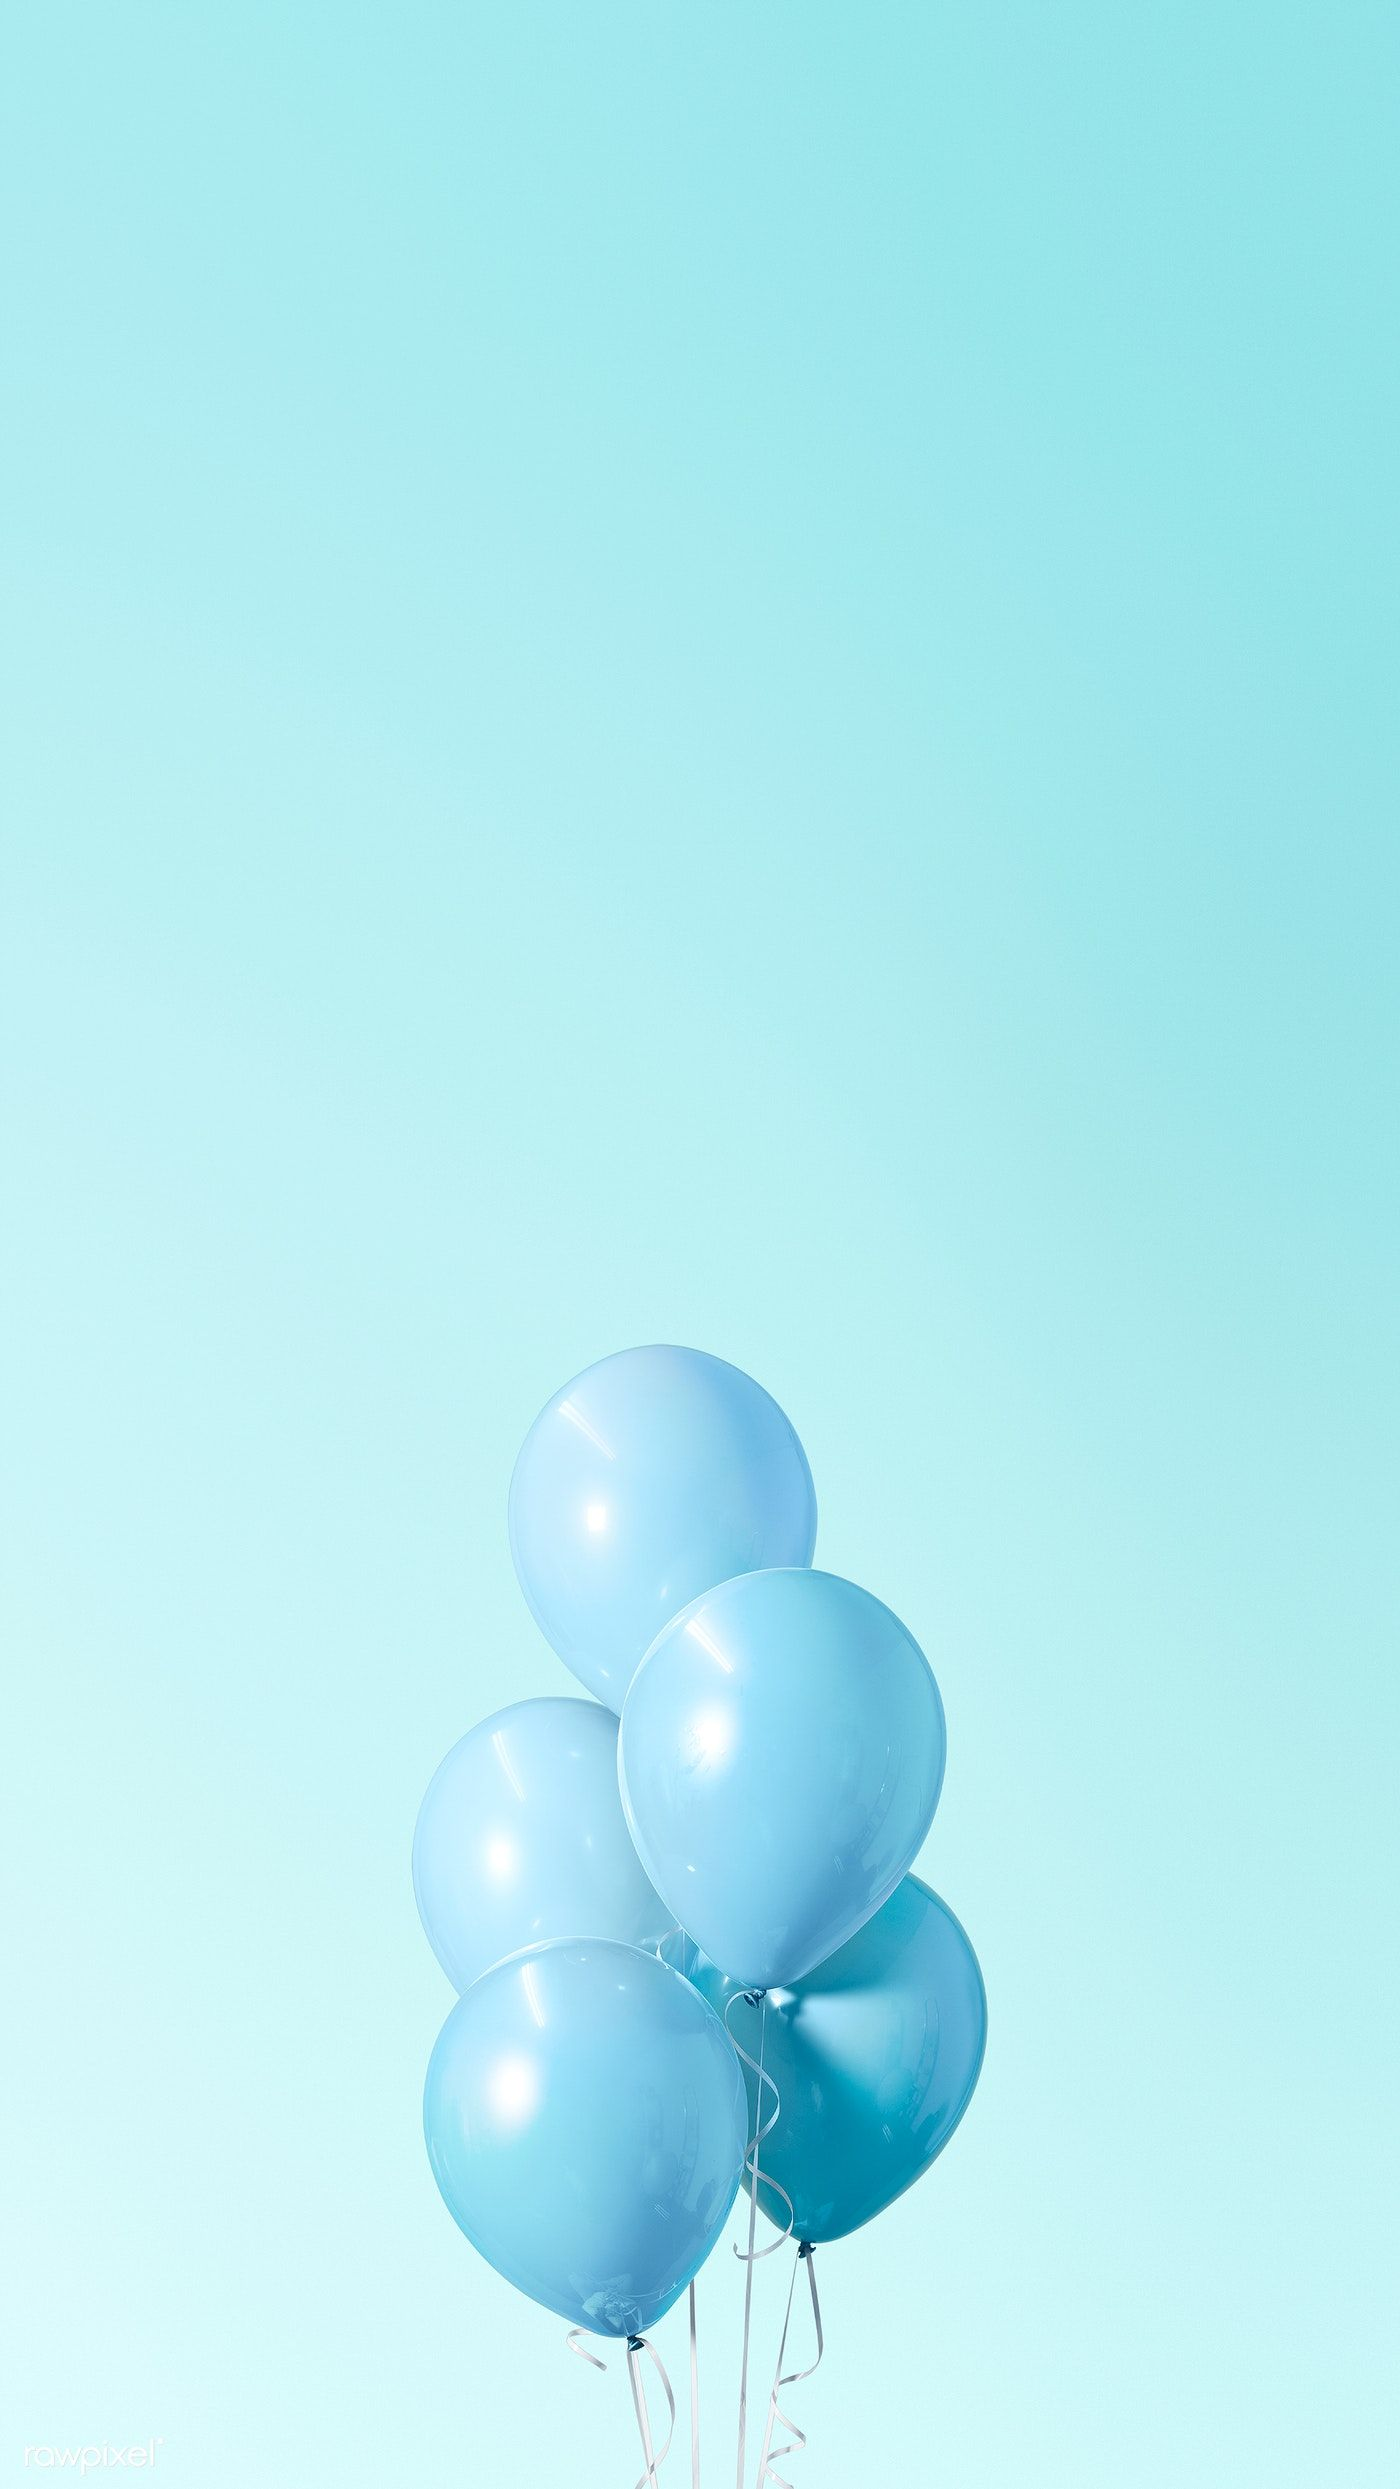 Download Premium Illustration Of Pastel Blue Balloons Mobile Phone Blue Wallpaper Iphone Baby Blue Wallpaper Blue Balloons